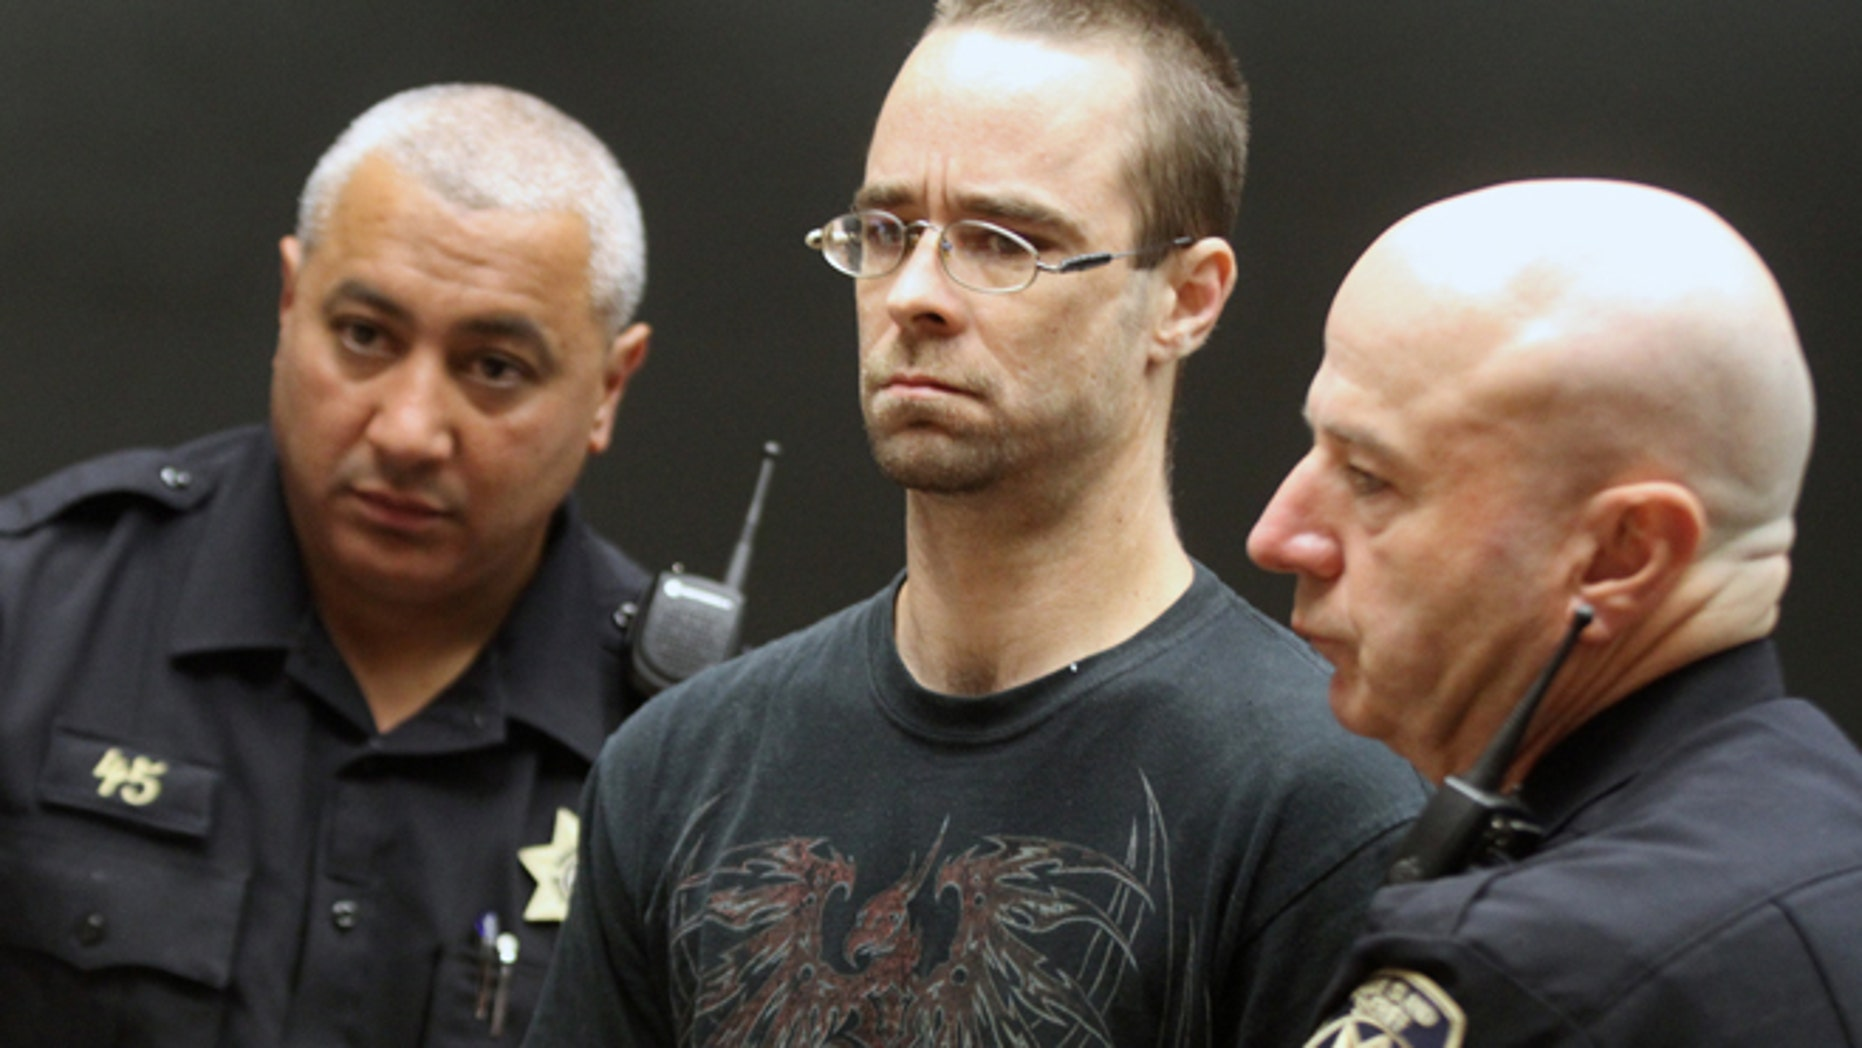 MAY 29: Steven Pietrowicz, Jr., center, of Burrillville, R.I., is arraigned on a murder charge in Providence District Court in Providence, R.I., for the murder of Domingo Ortiz of Worcester, Mass., Monday, June 1, 2015. Pietrowicz is one of two people facing murder charges in the death of Ortiz. The body of Ortiz was found Friday, May 29 under newly laid concrete beneath an outside deck of a house in Burrillville, R.I.,where Pietrowicz and Michelle Morin of Worcester, Mass. lived.